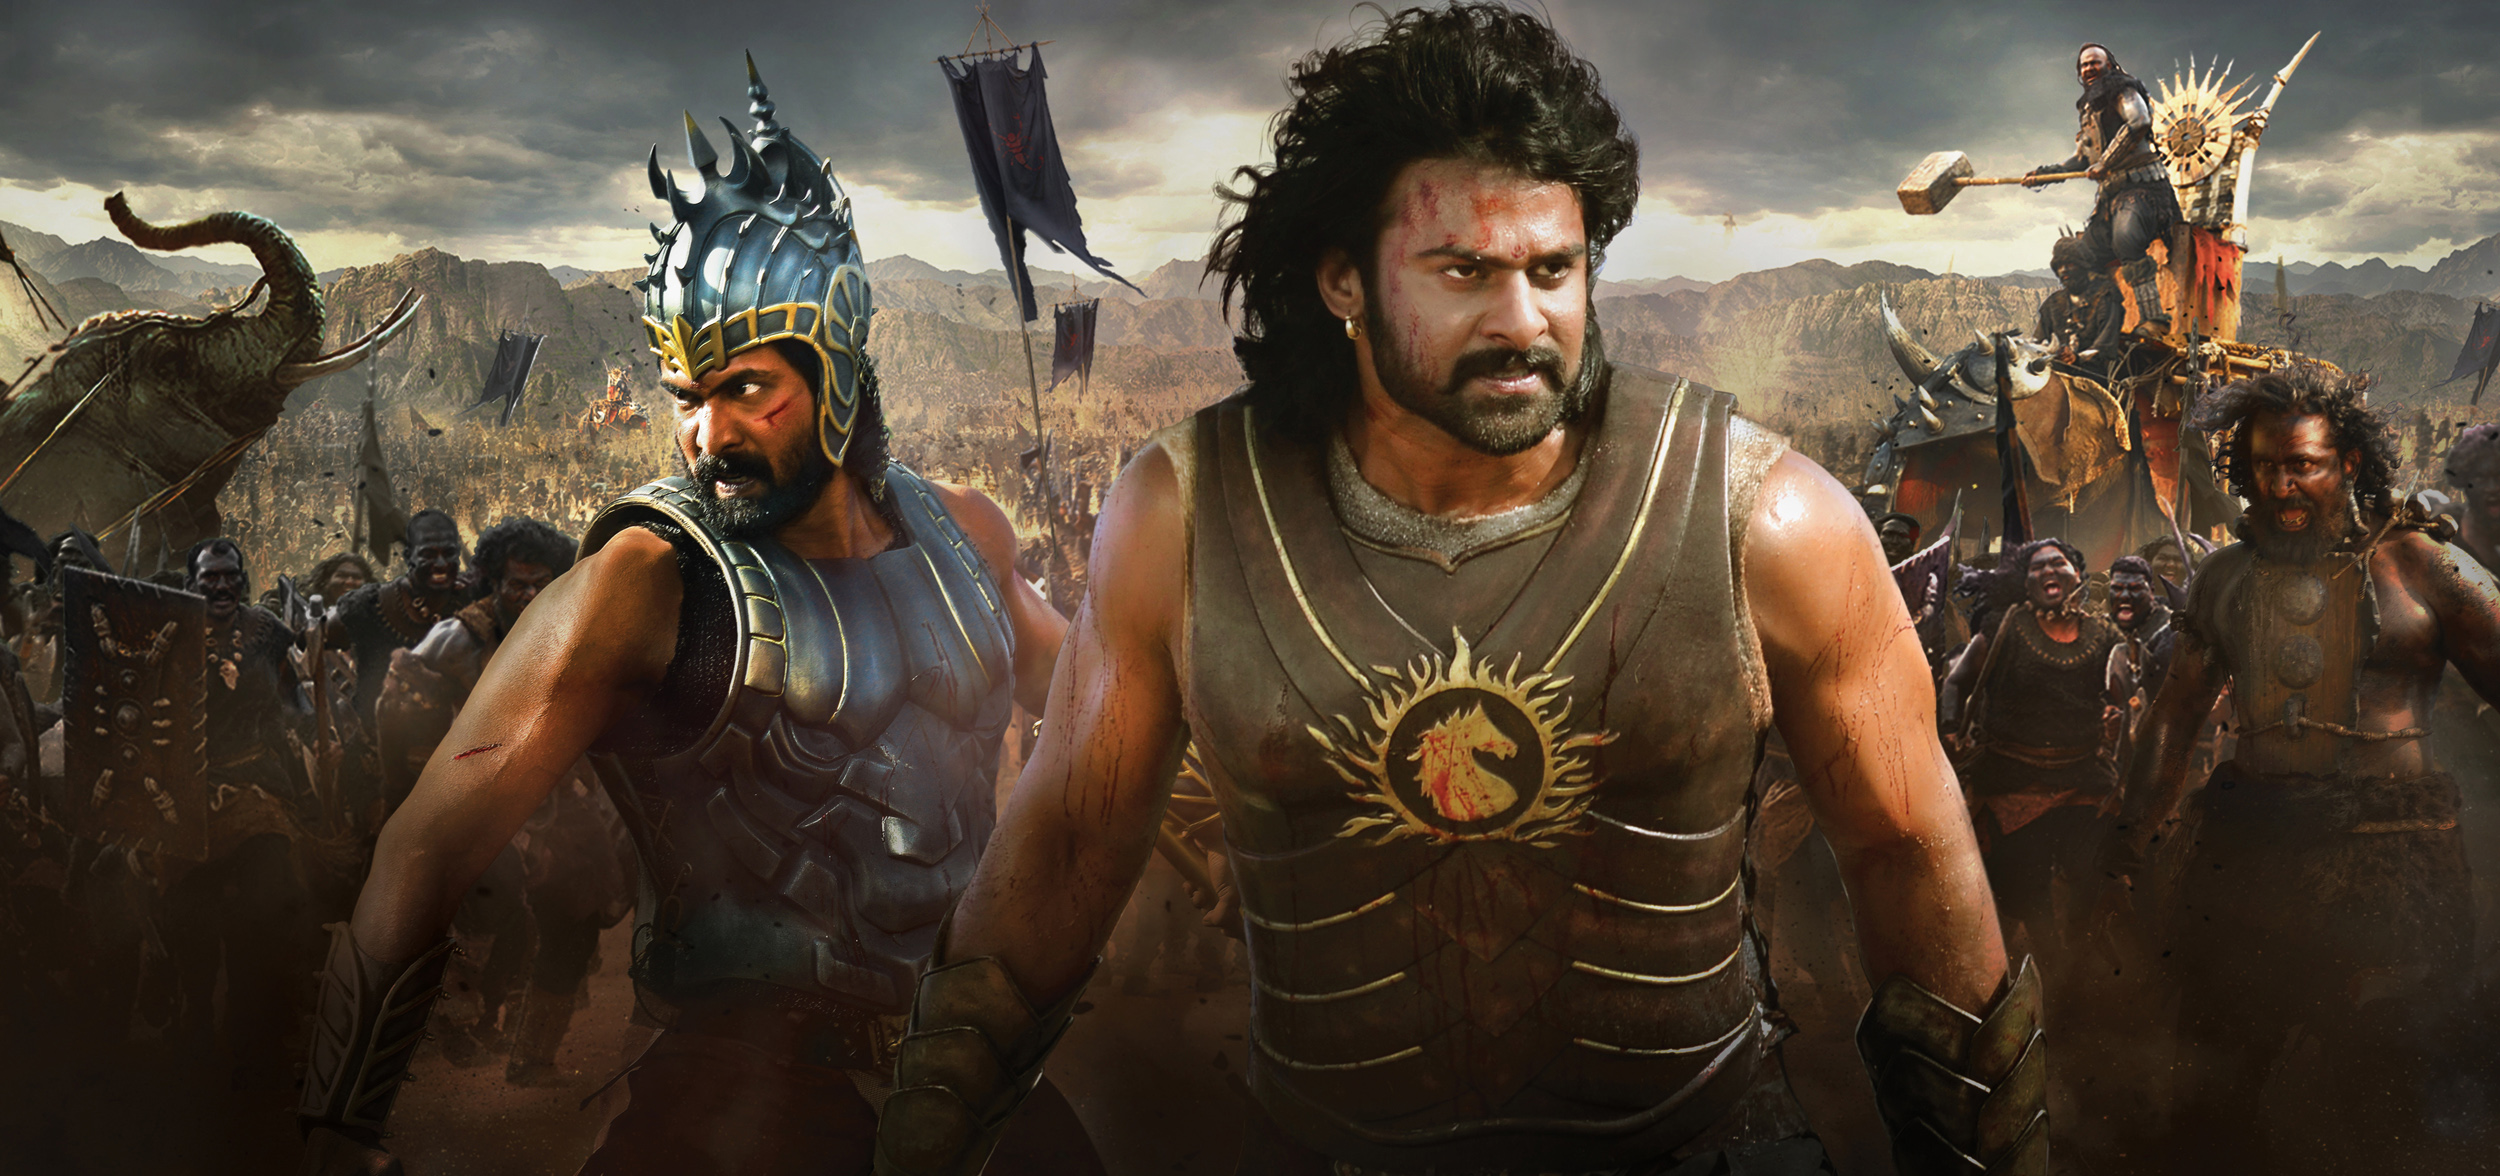 Bahubali: The Beginning (2015) - Photo Gallery - IMDb